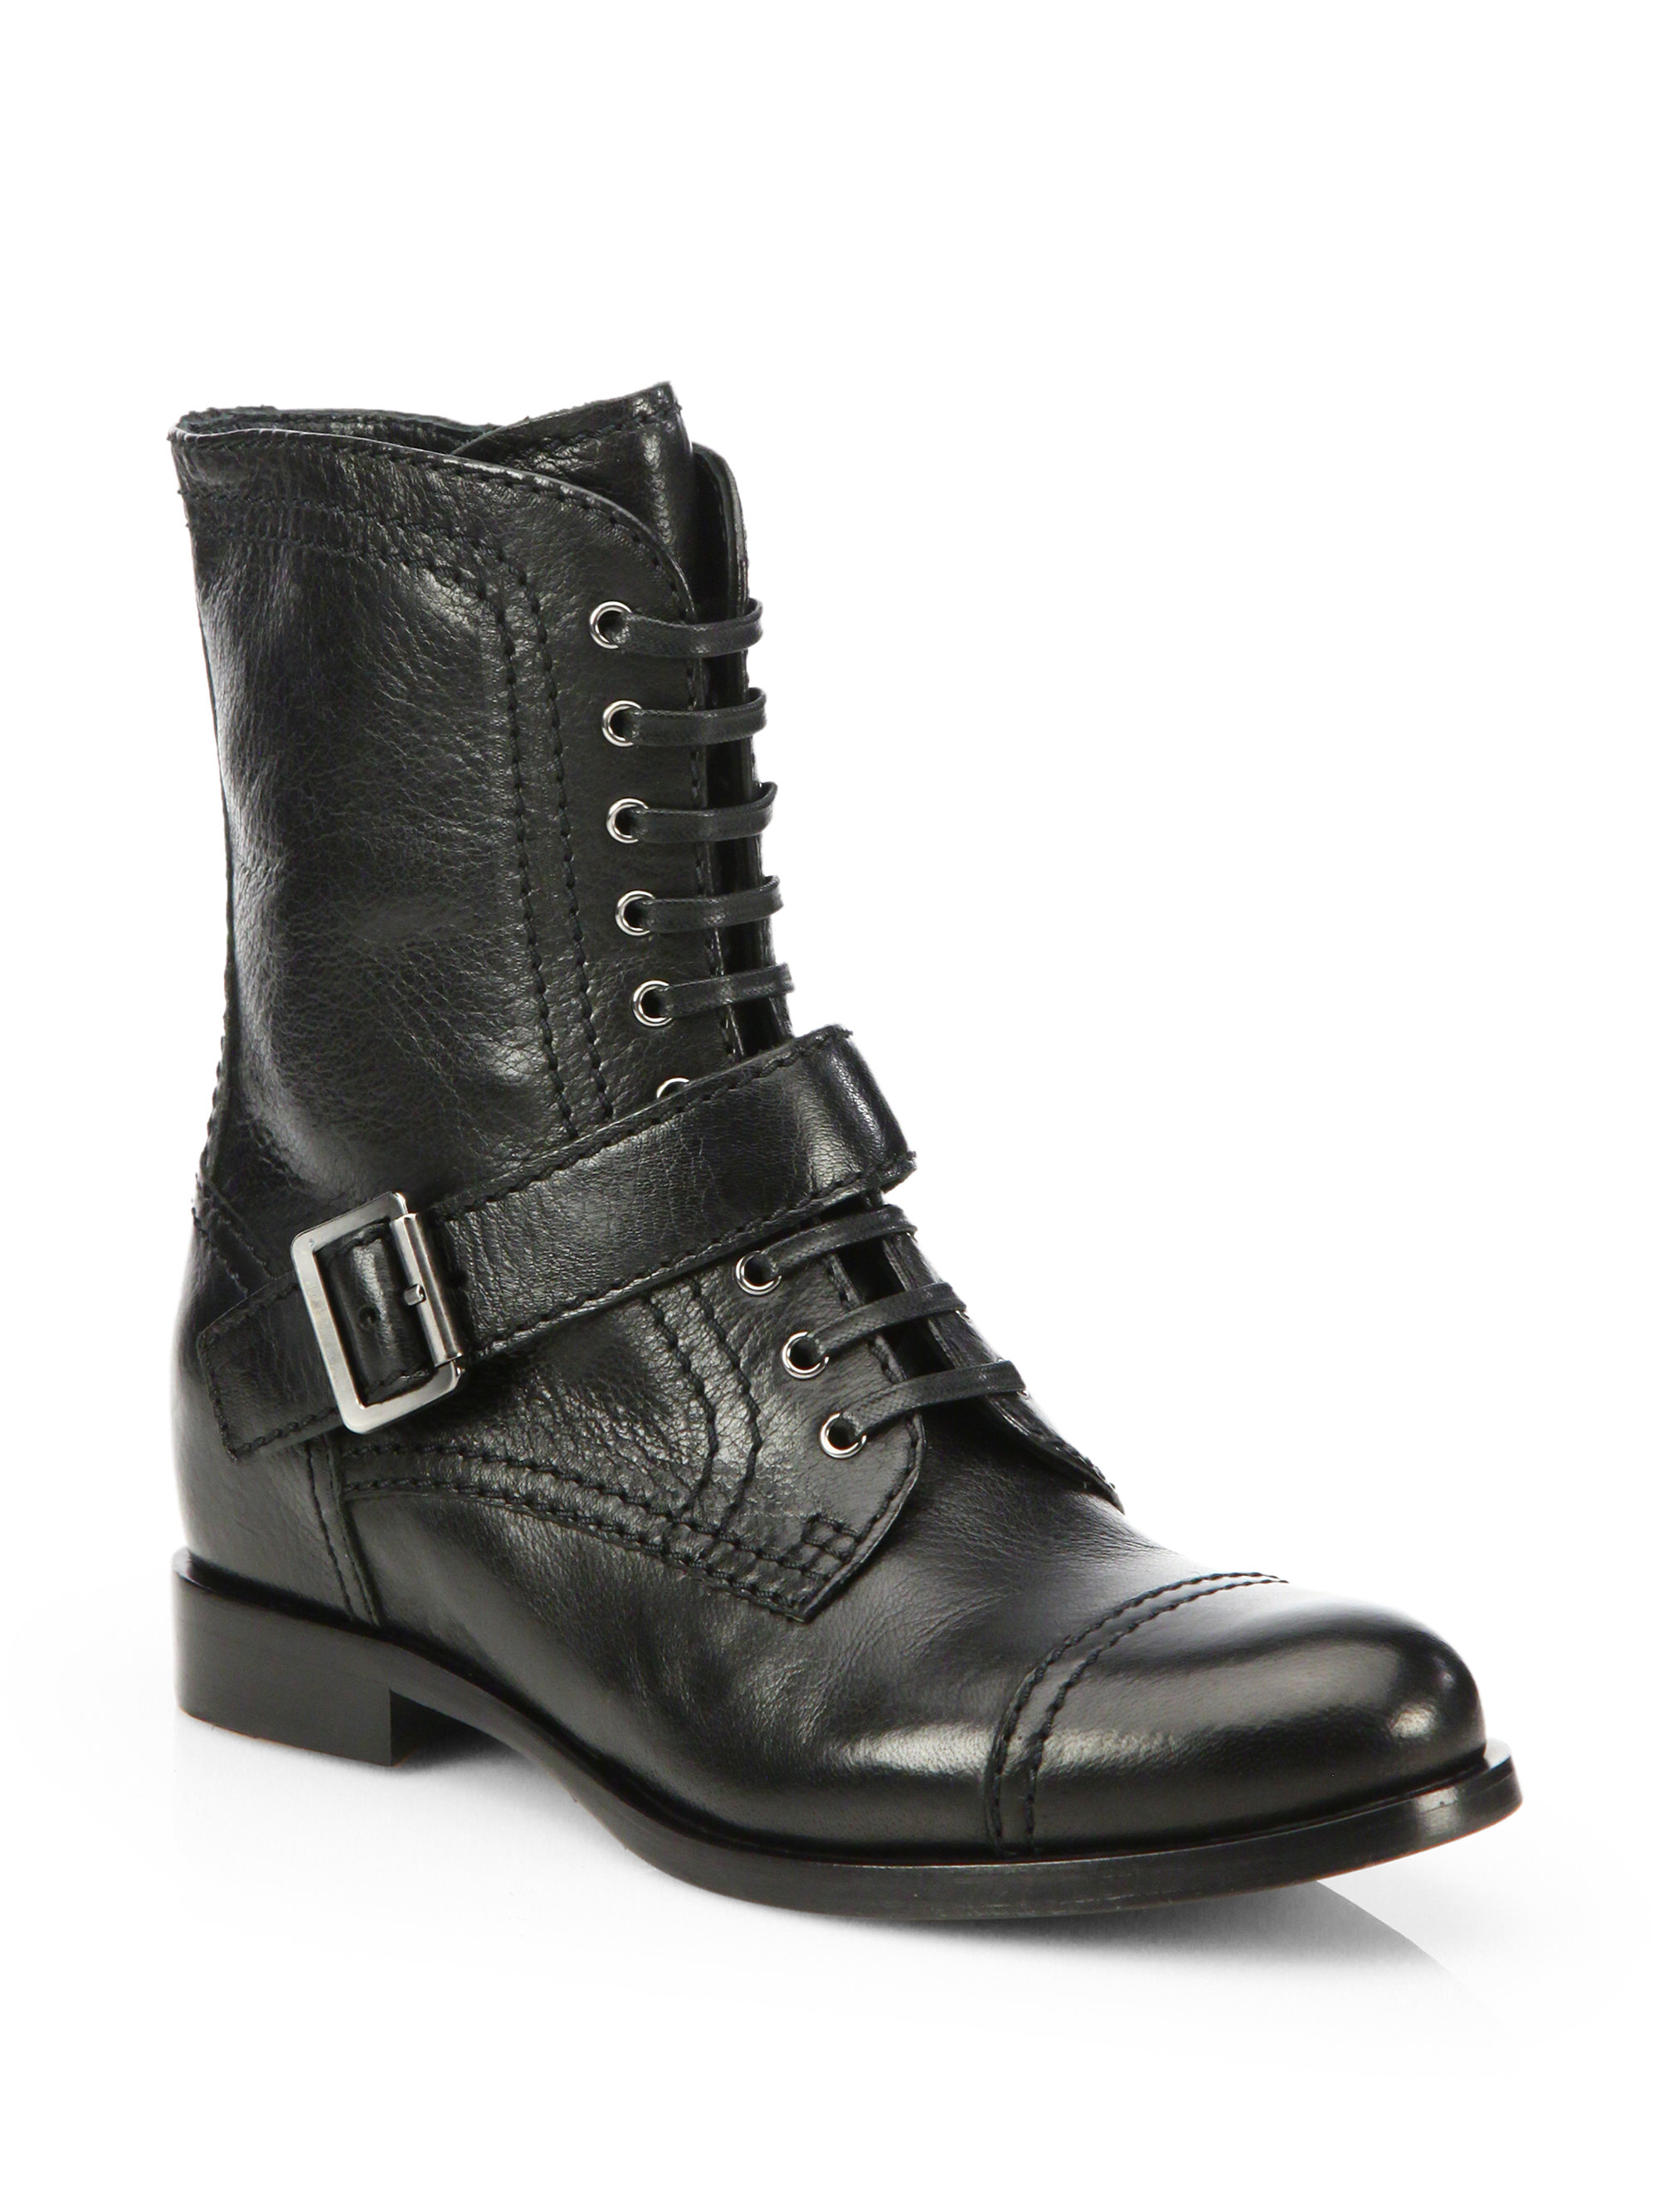 Prada Leather Buckle Midcalf Boots In Black Nero Lyst